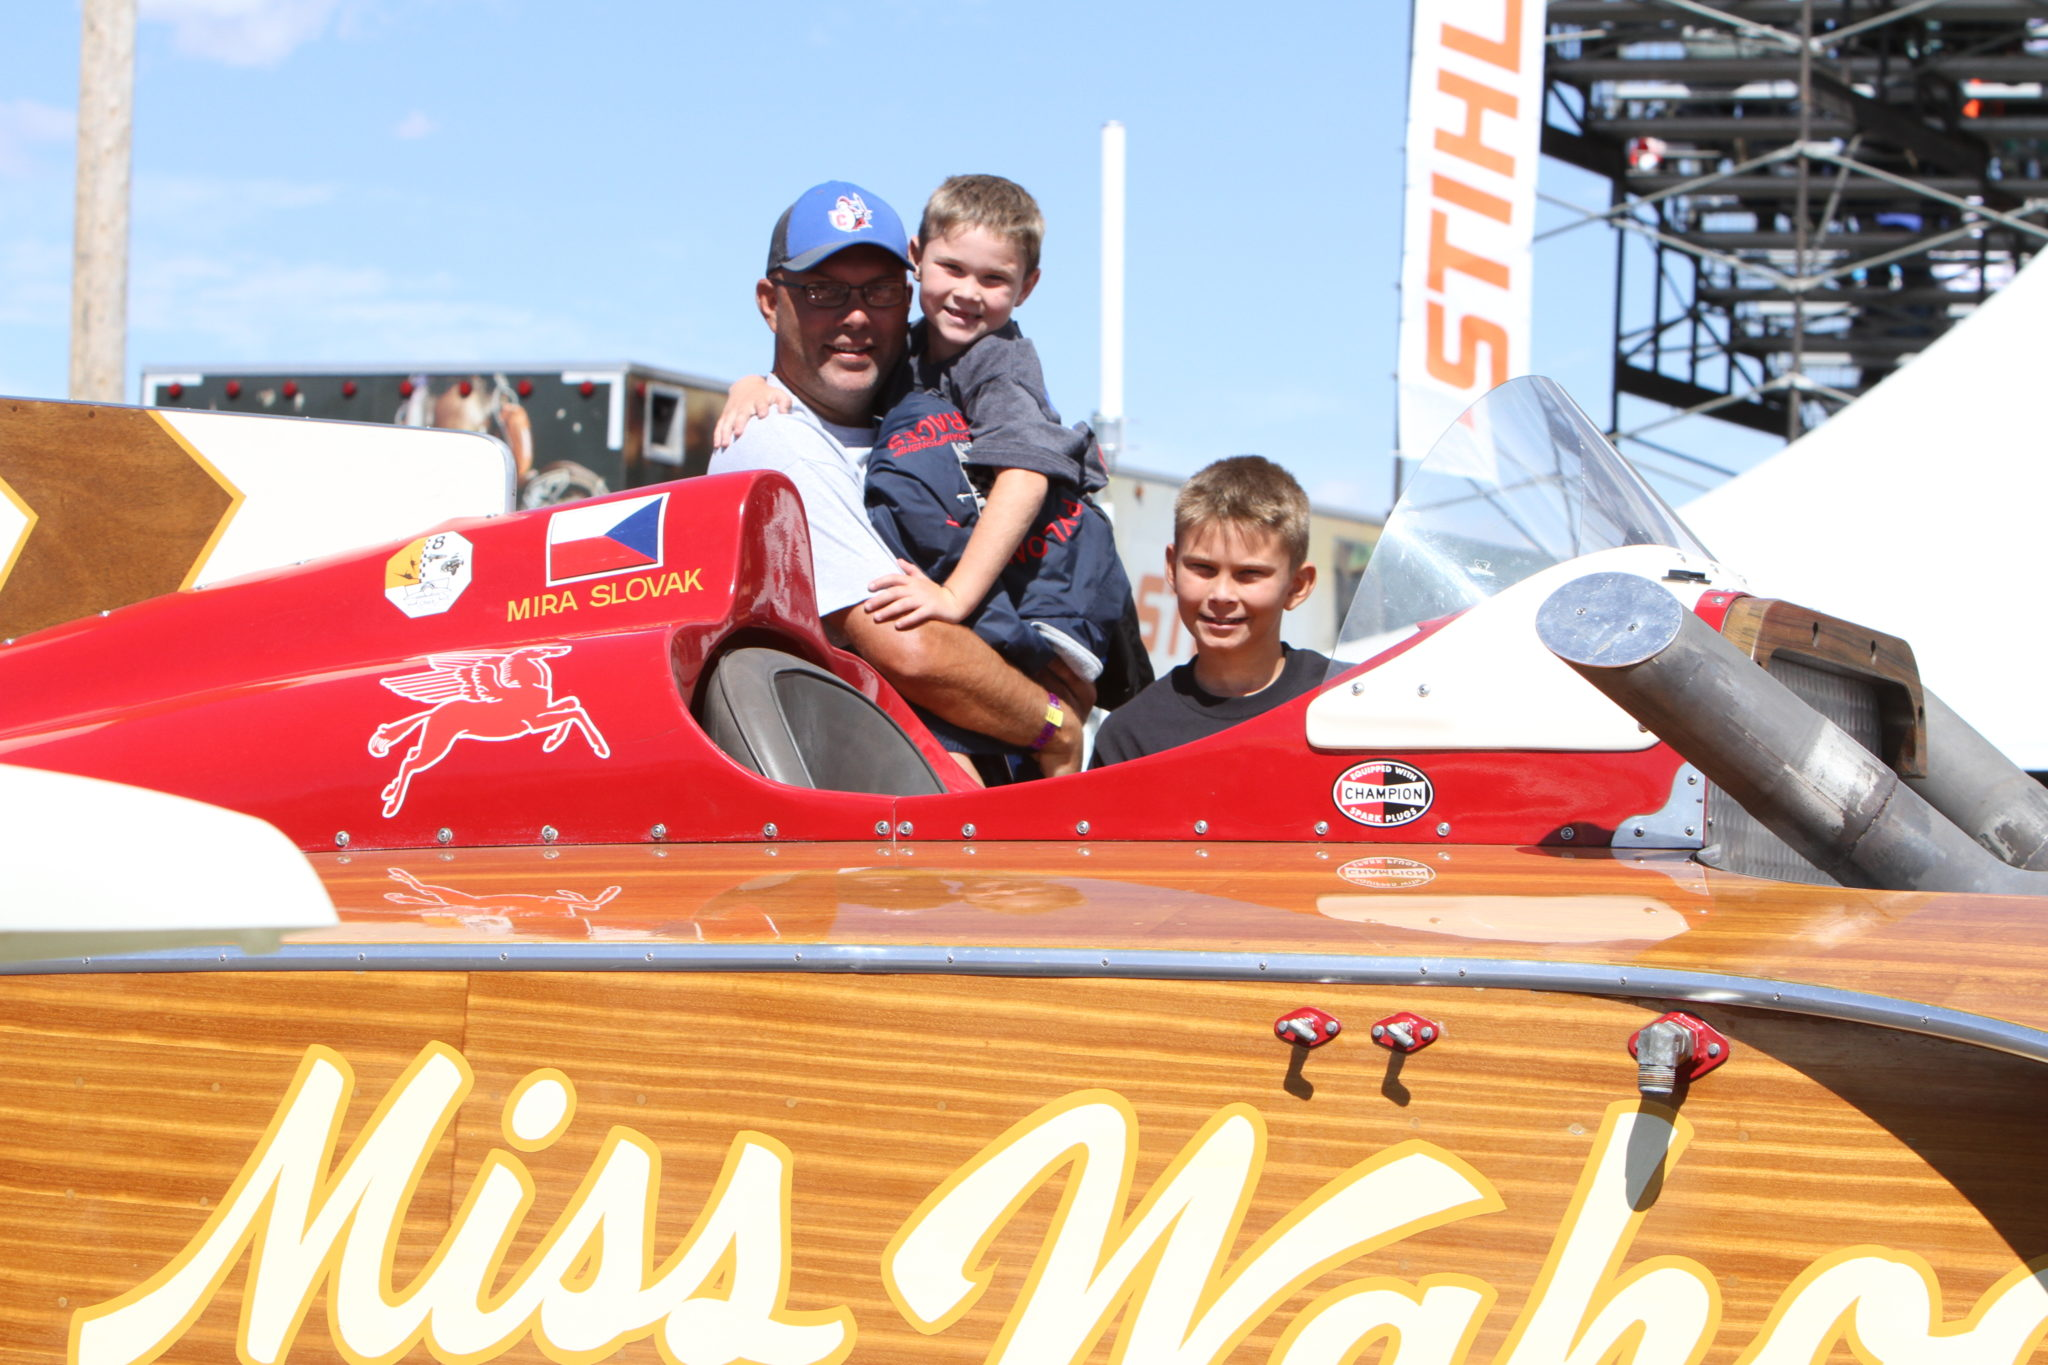 What Makes the Reno Air Races a Family Event